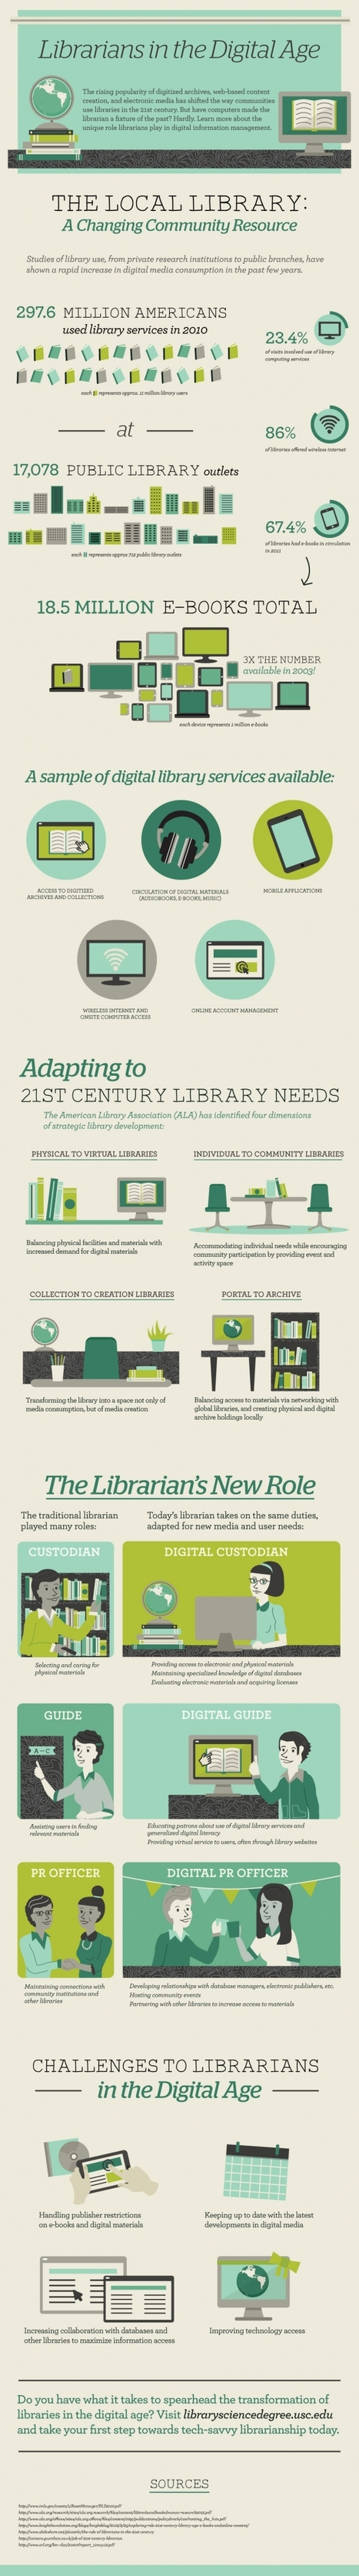 The Role of Librarians In The Digital Age Infographic   Bibliotecas Escolares   Scoop.it